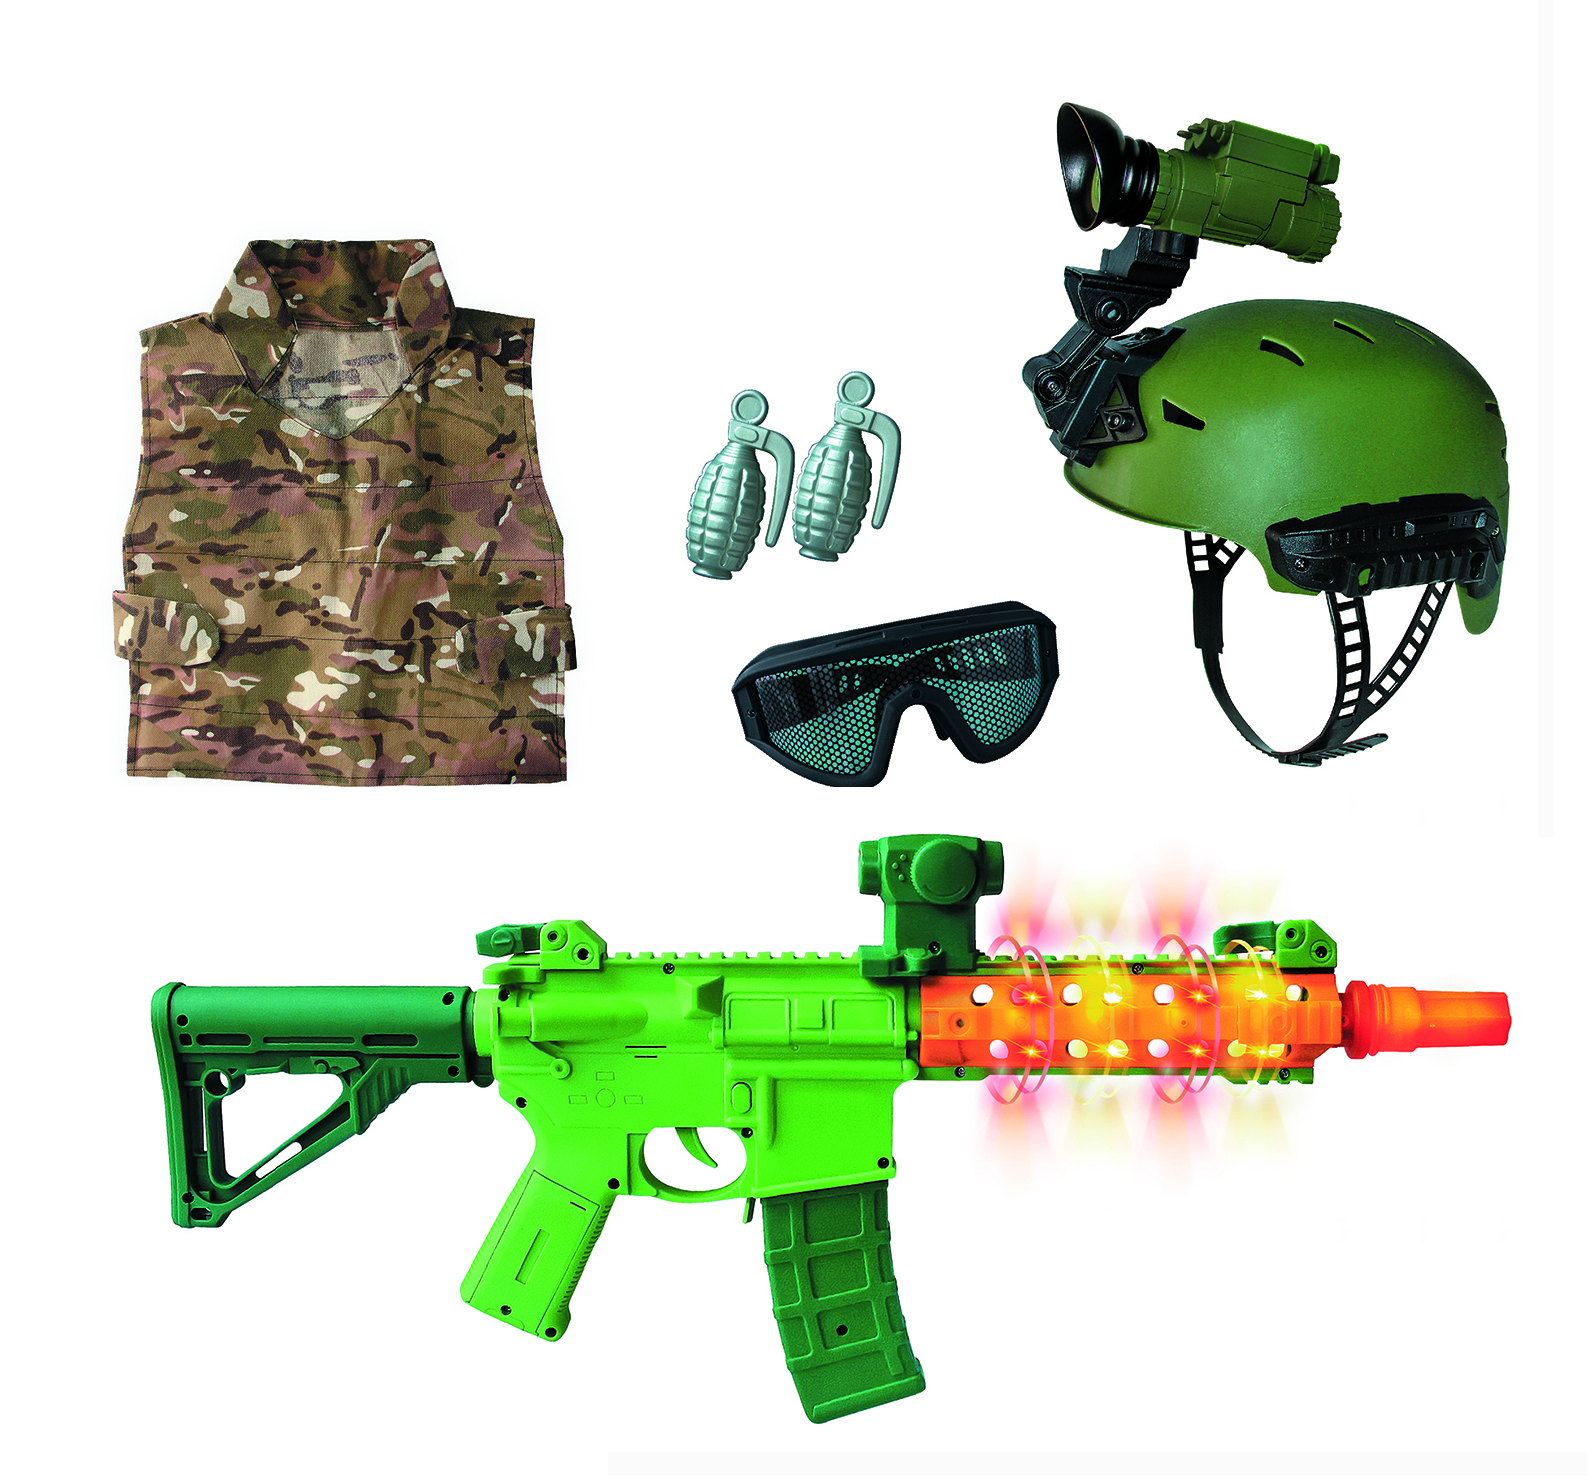 Adventure Force Deluxe Action Role Play Set, 7.0 PIECE(S)